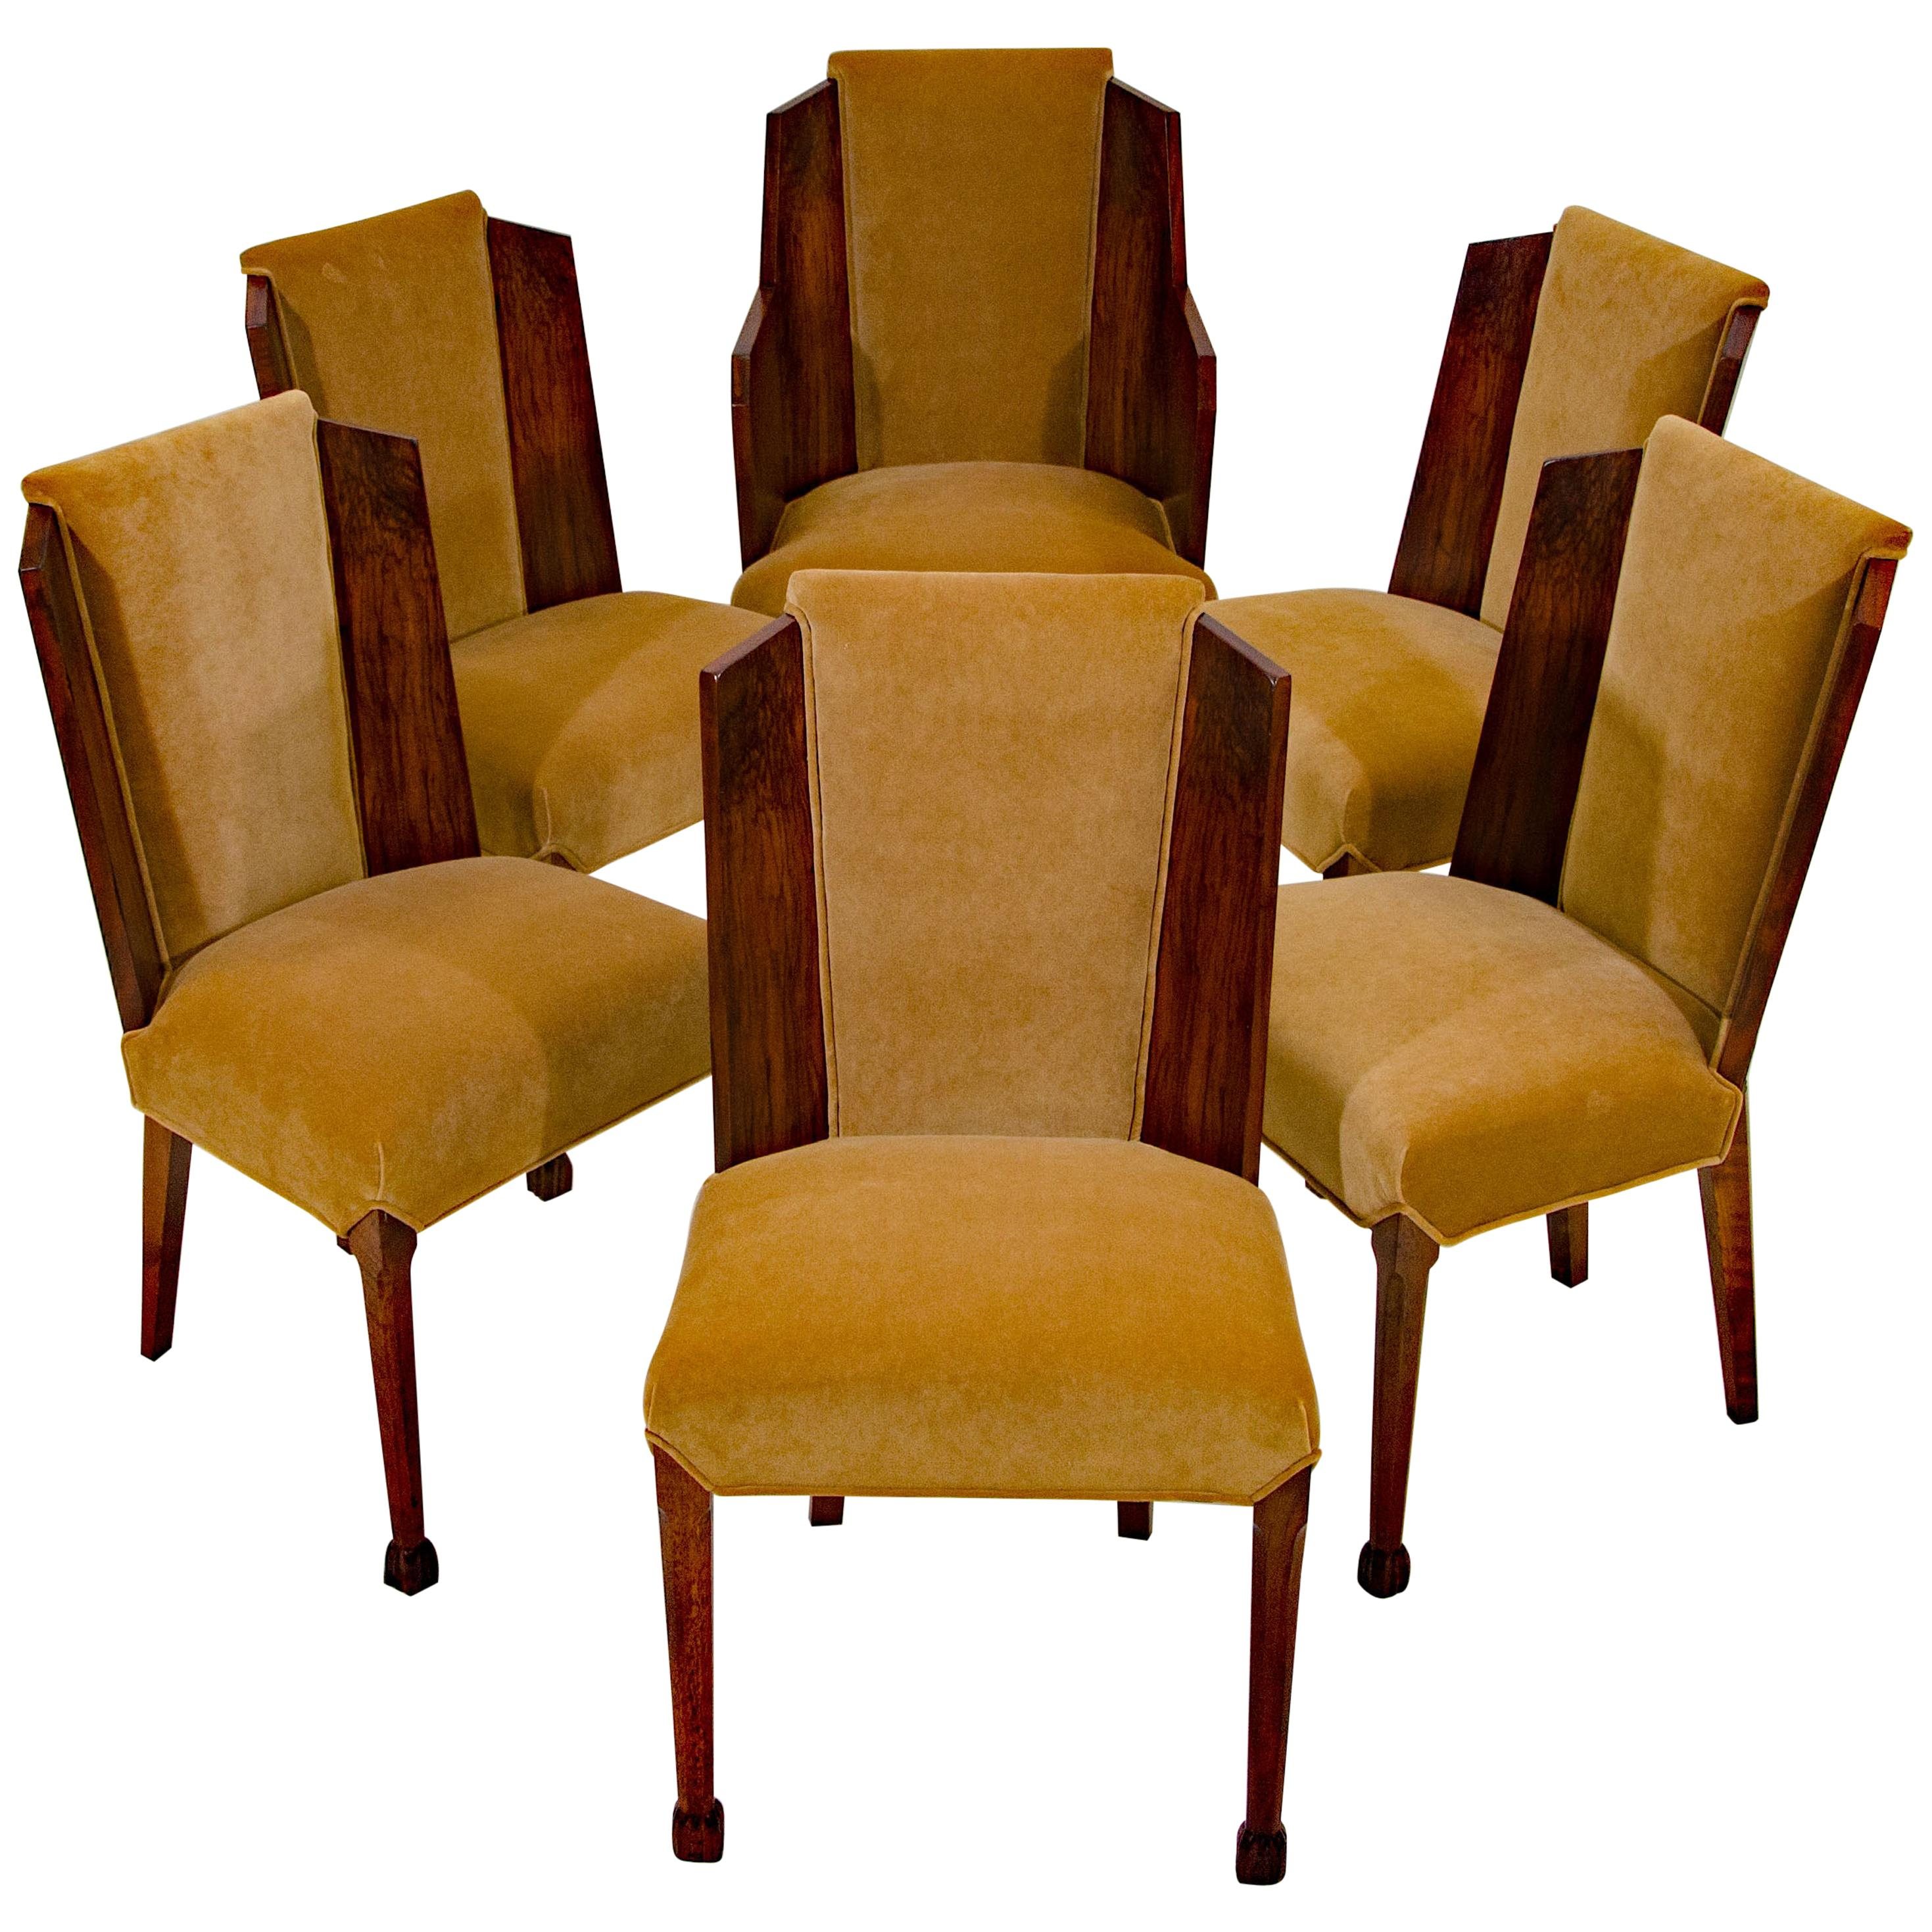 Set of Six Burl Walnut French Art Deco Dining Chairs